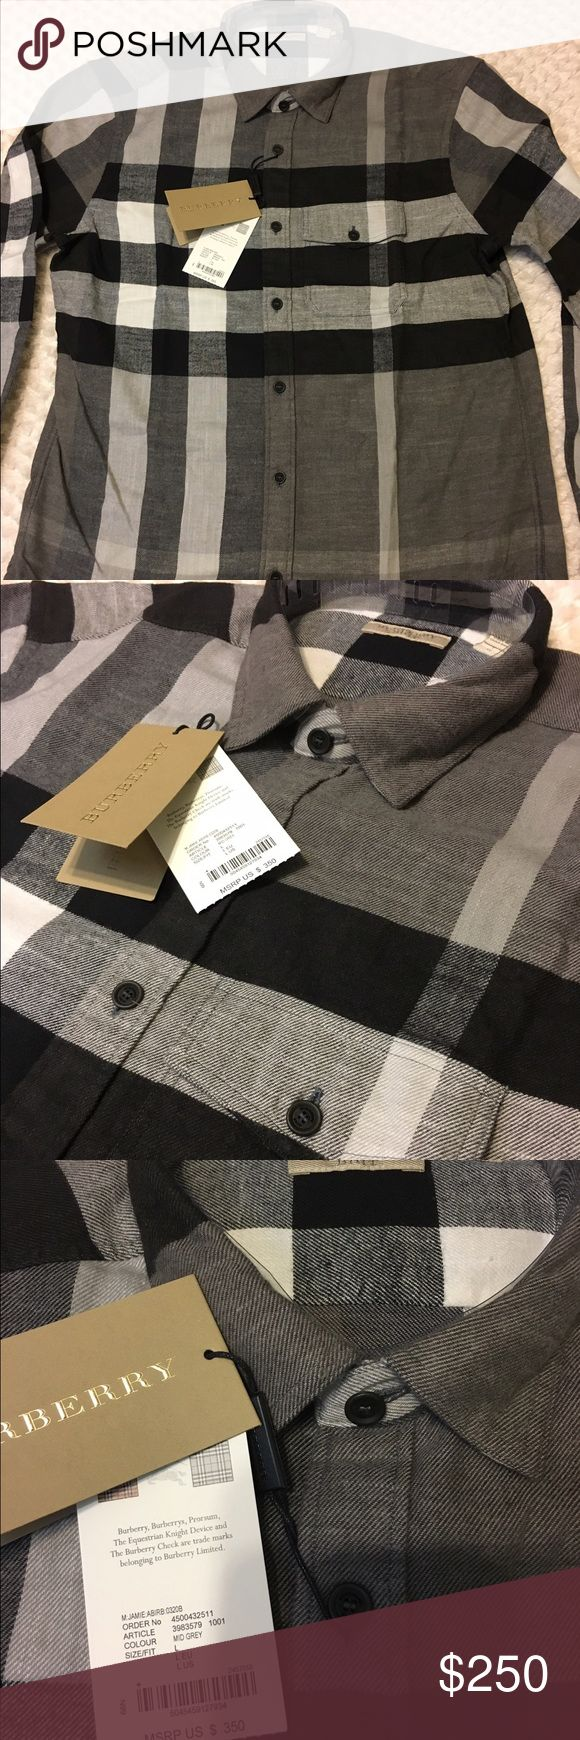 New authentic burberry shirt for men L 2016 new with tags 100% authentic burberry shirt size large gray color 100% cotton original price is 350$ Burberry Shirts Casual Button Down Shirts